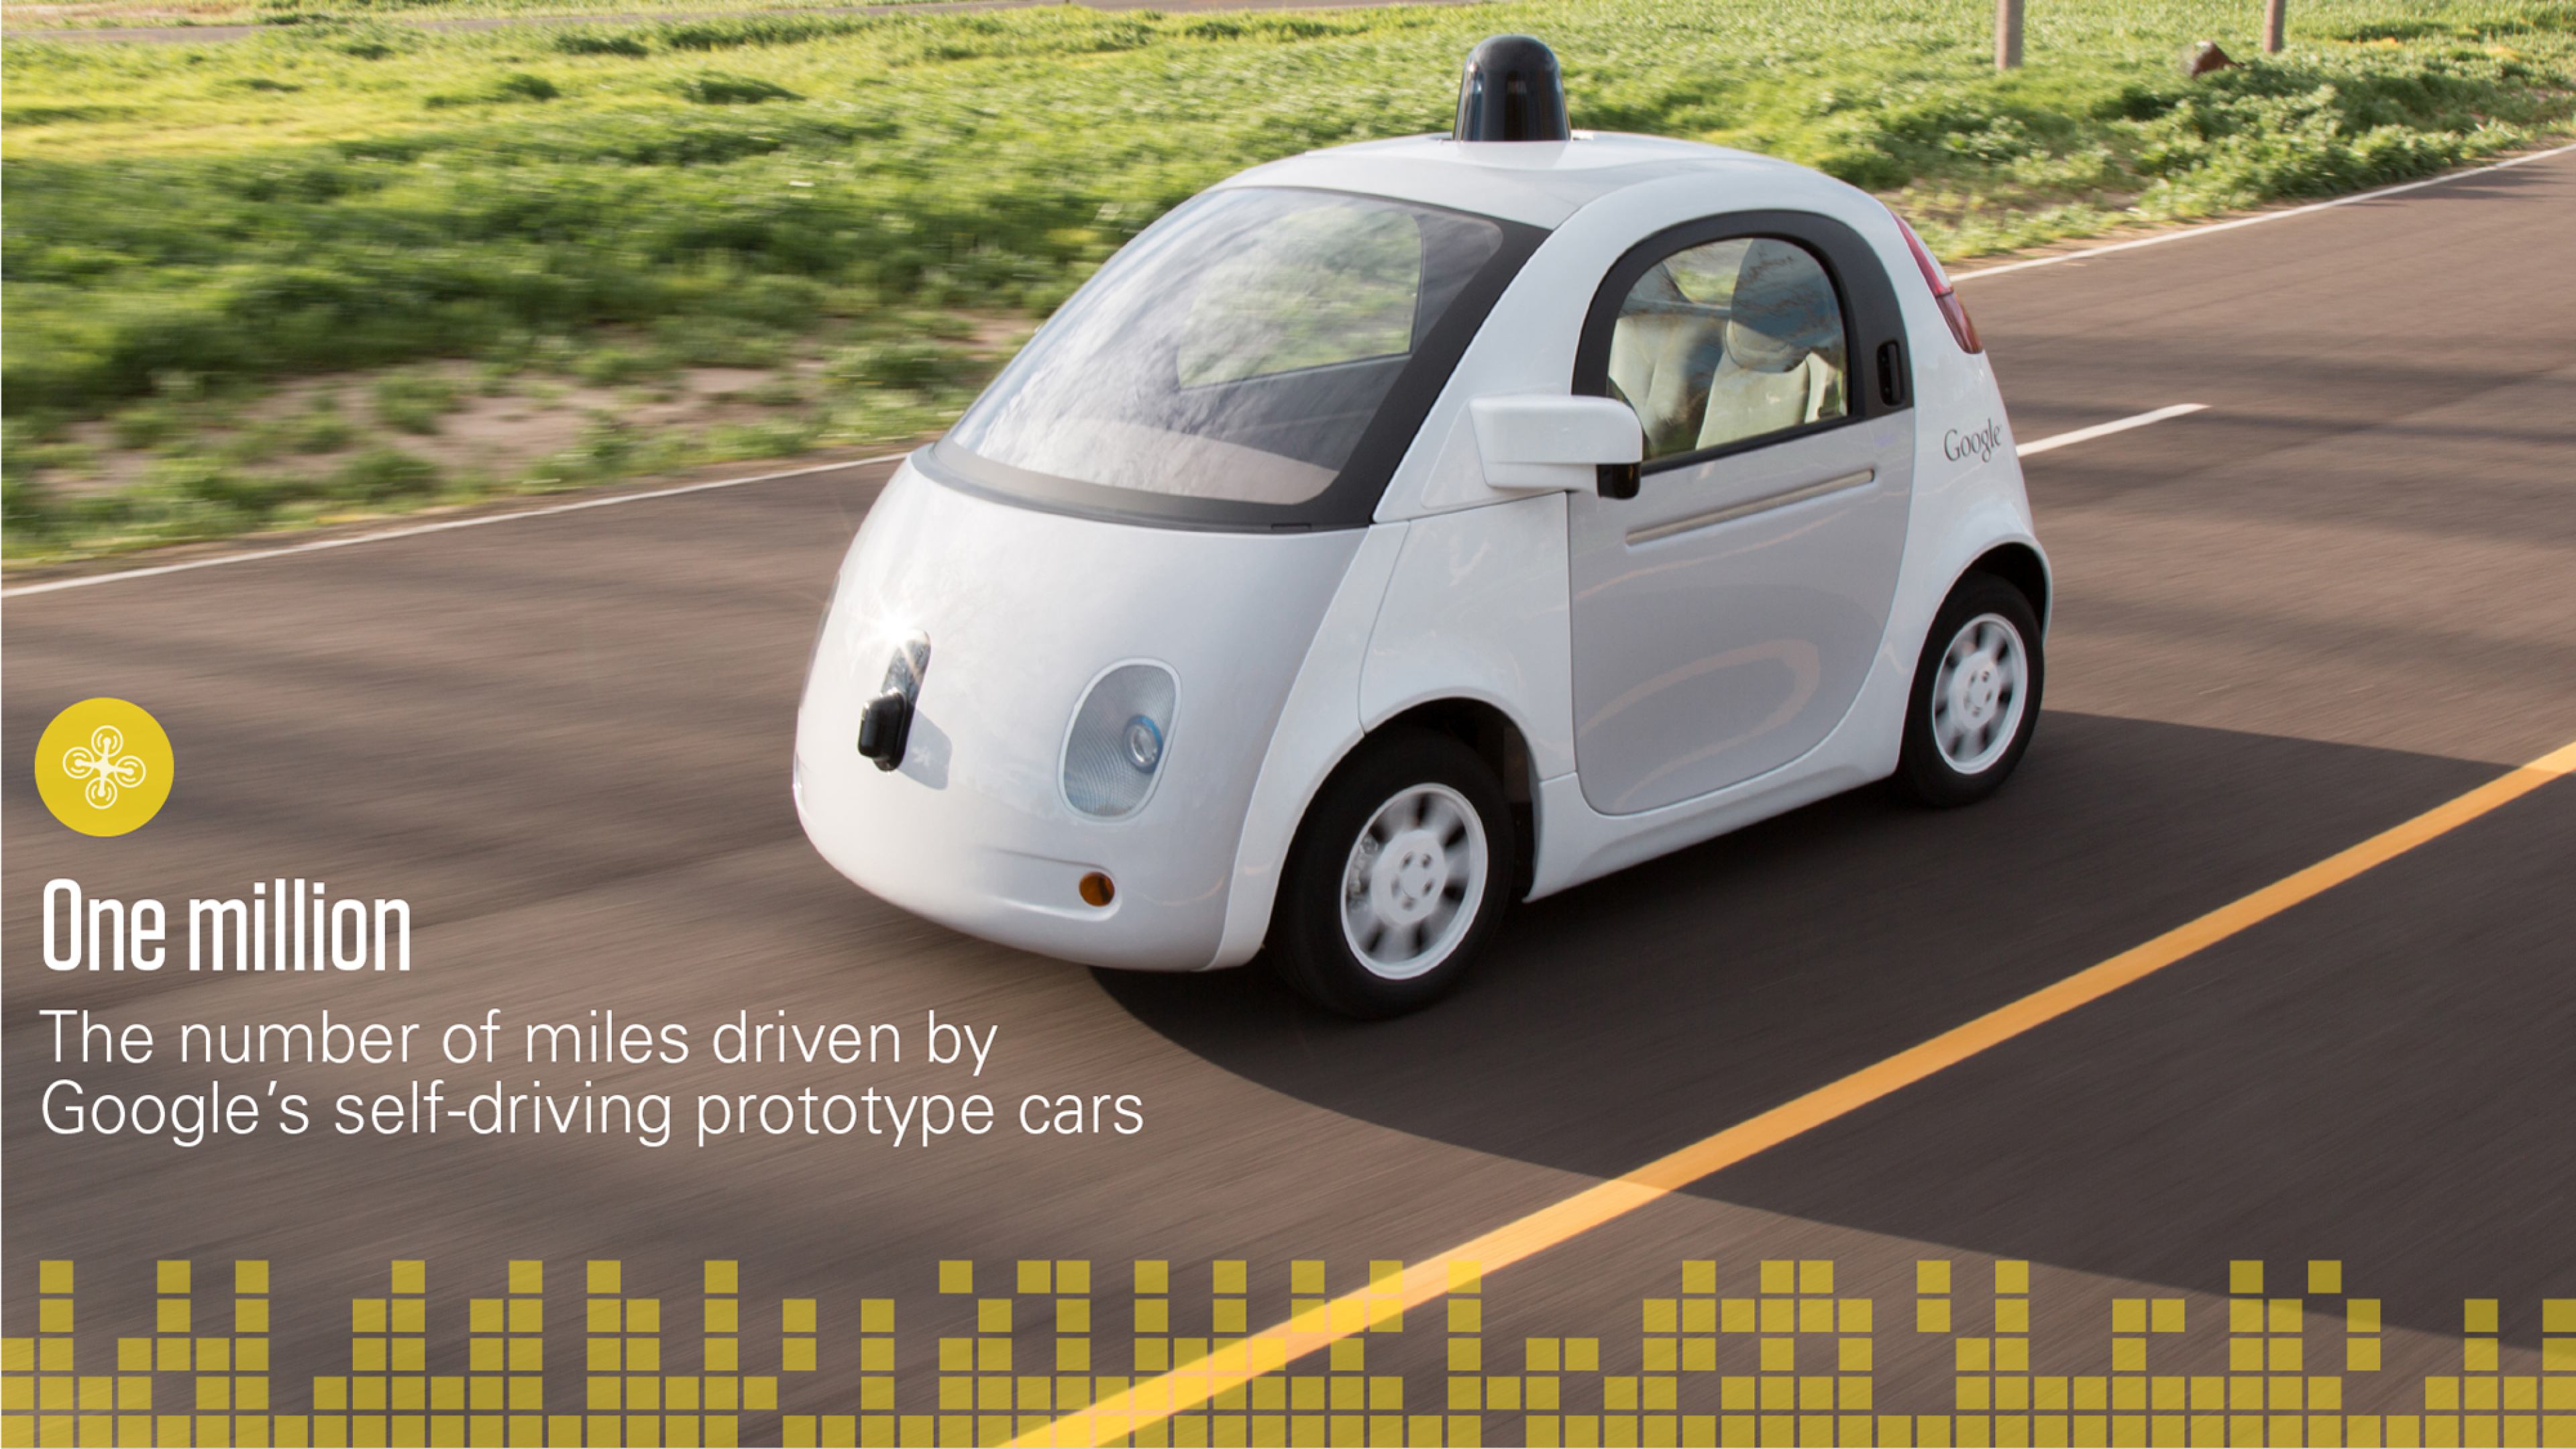 The Google self-driving prototype car